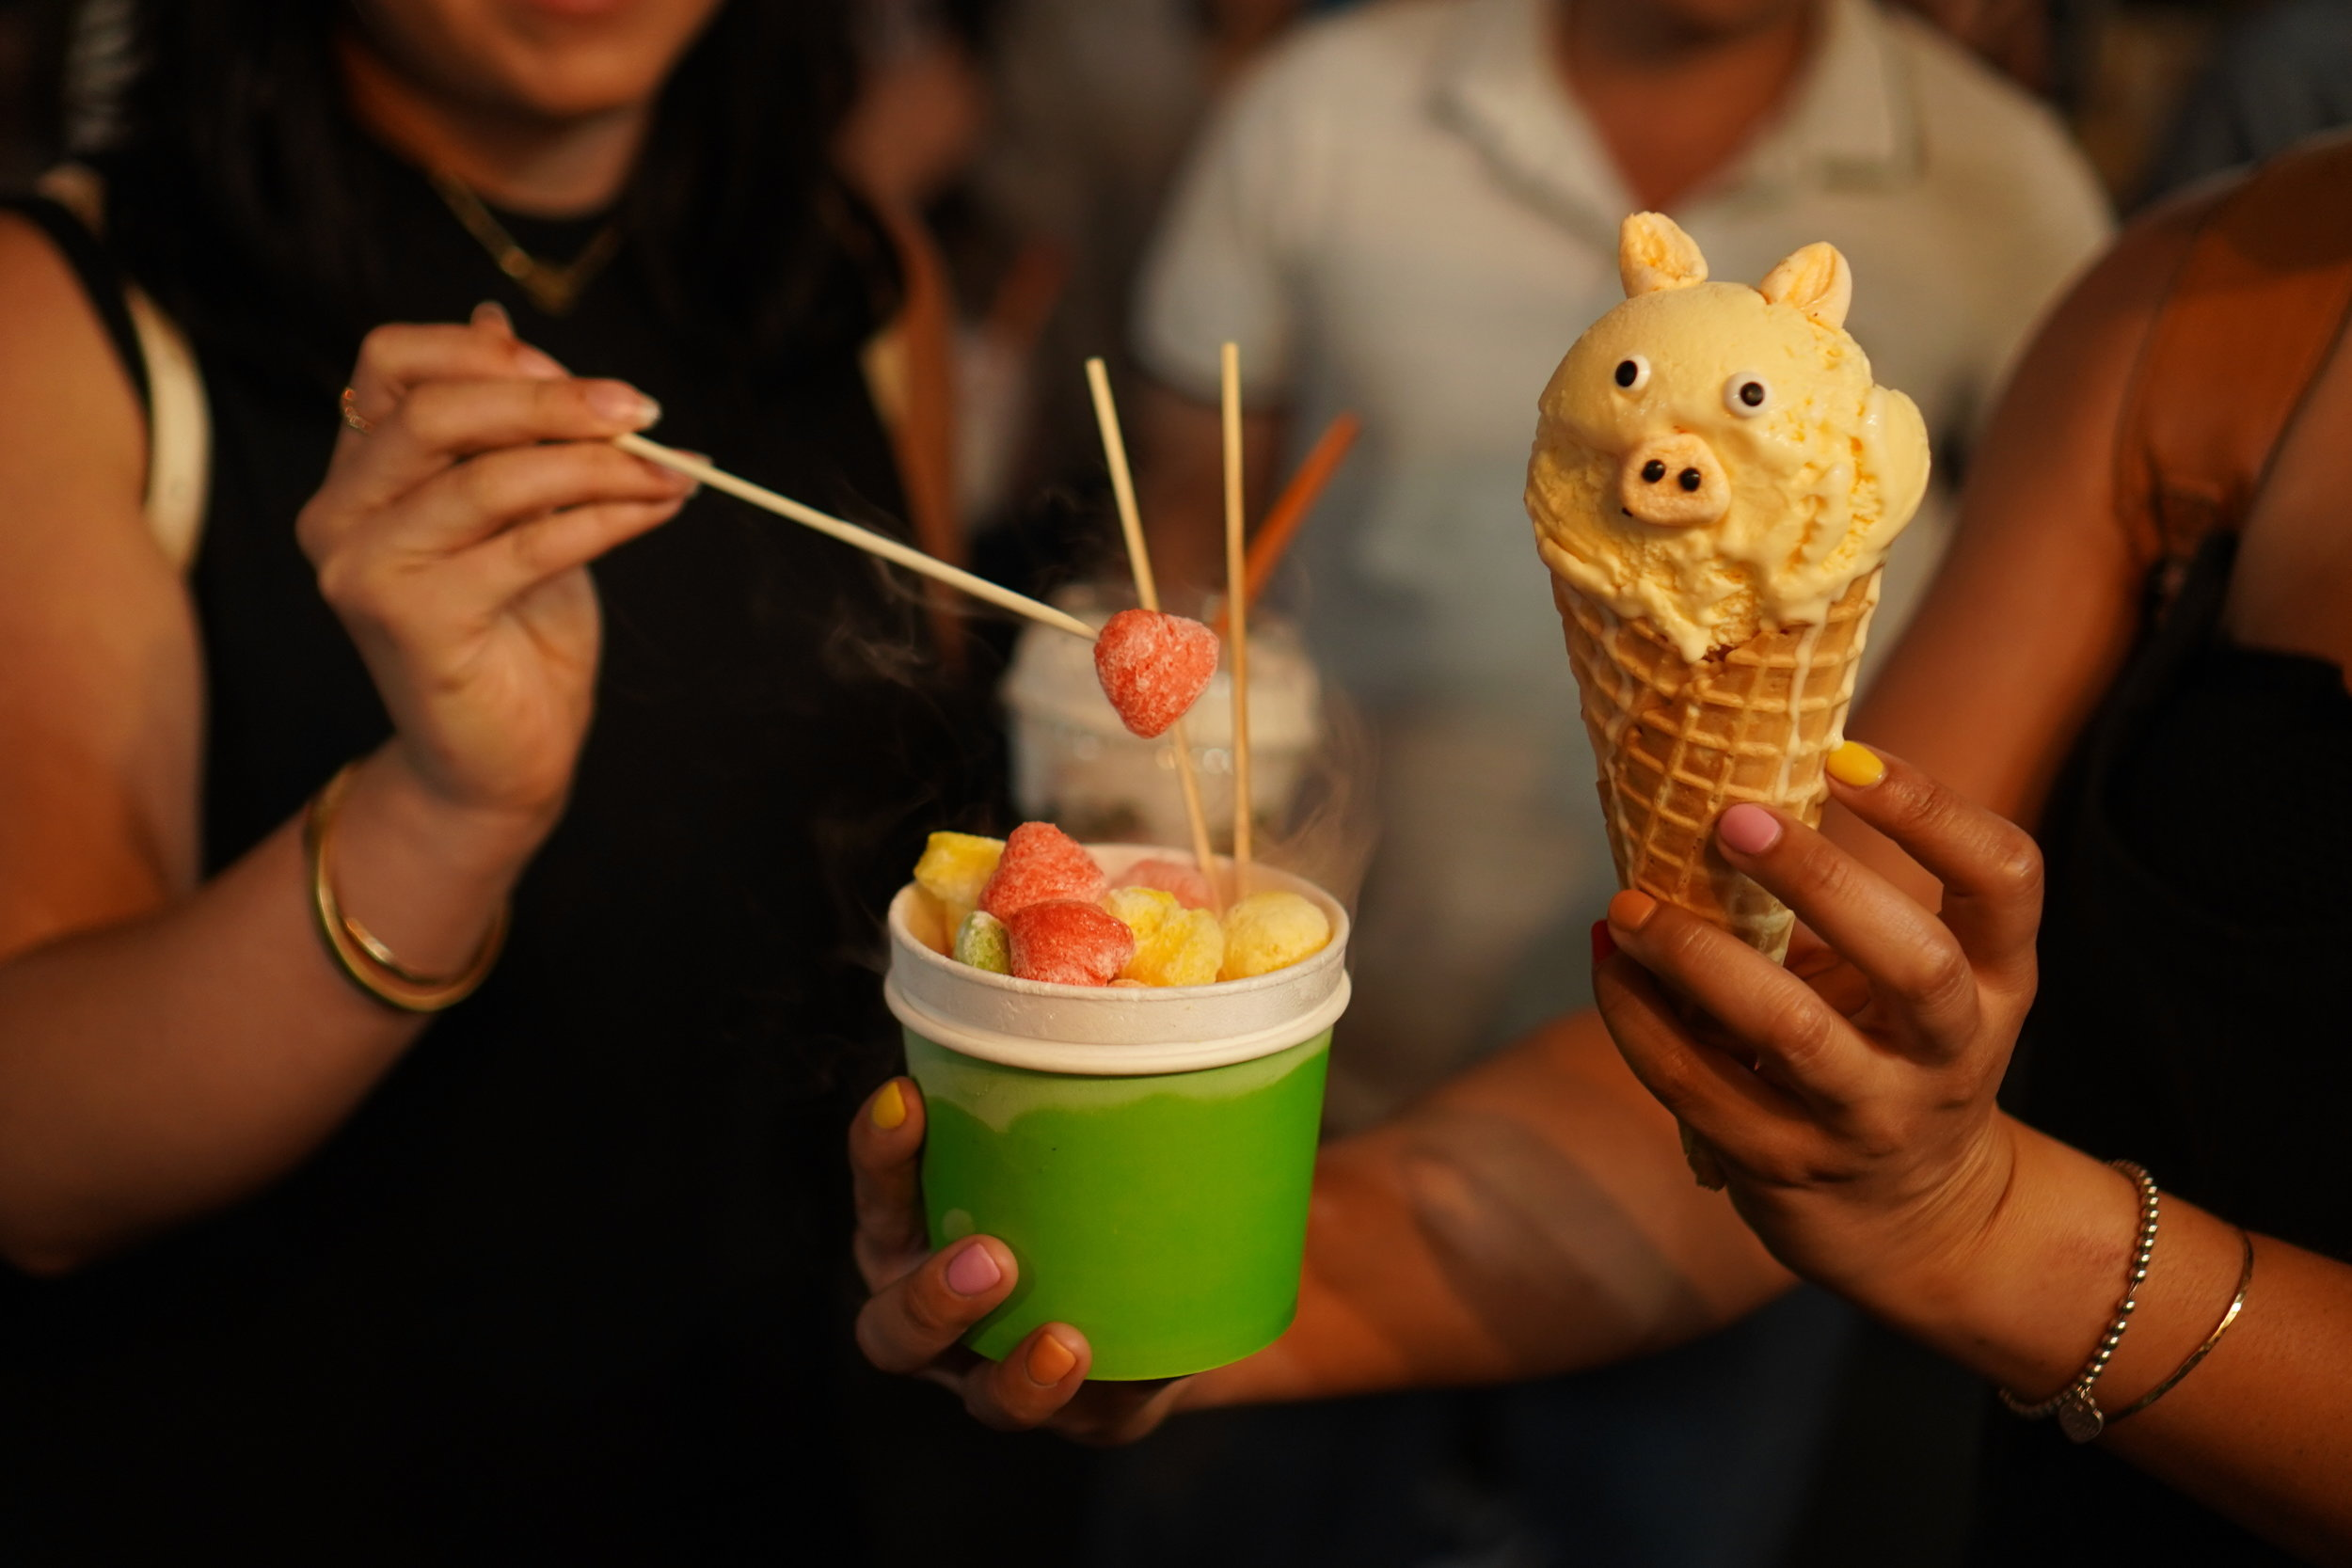 Animal Ice Cream and other fun desserts are perfect to share with friends at Little Saigon Market | photo courtesy of 100inc Agency